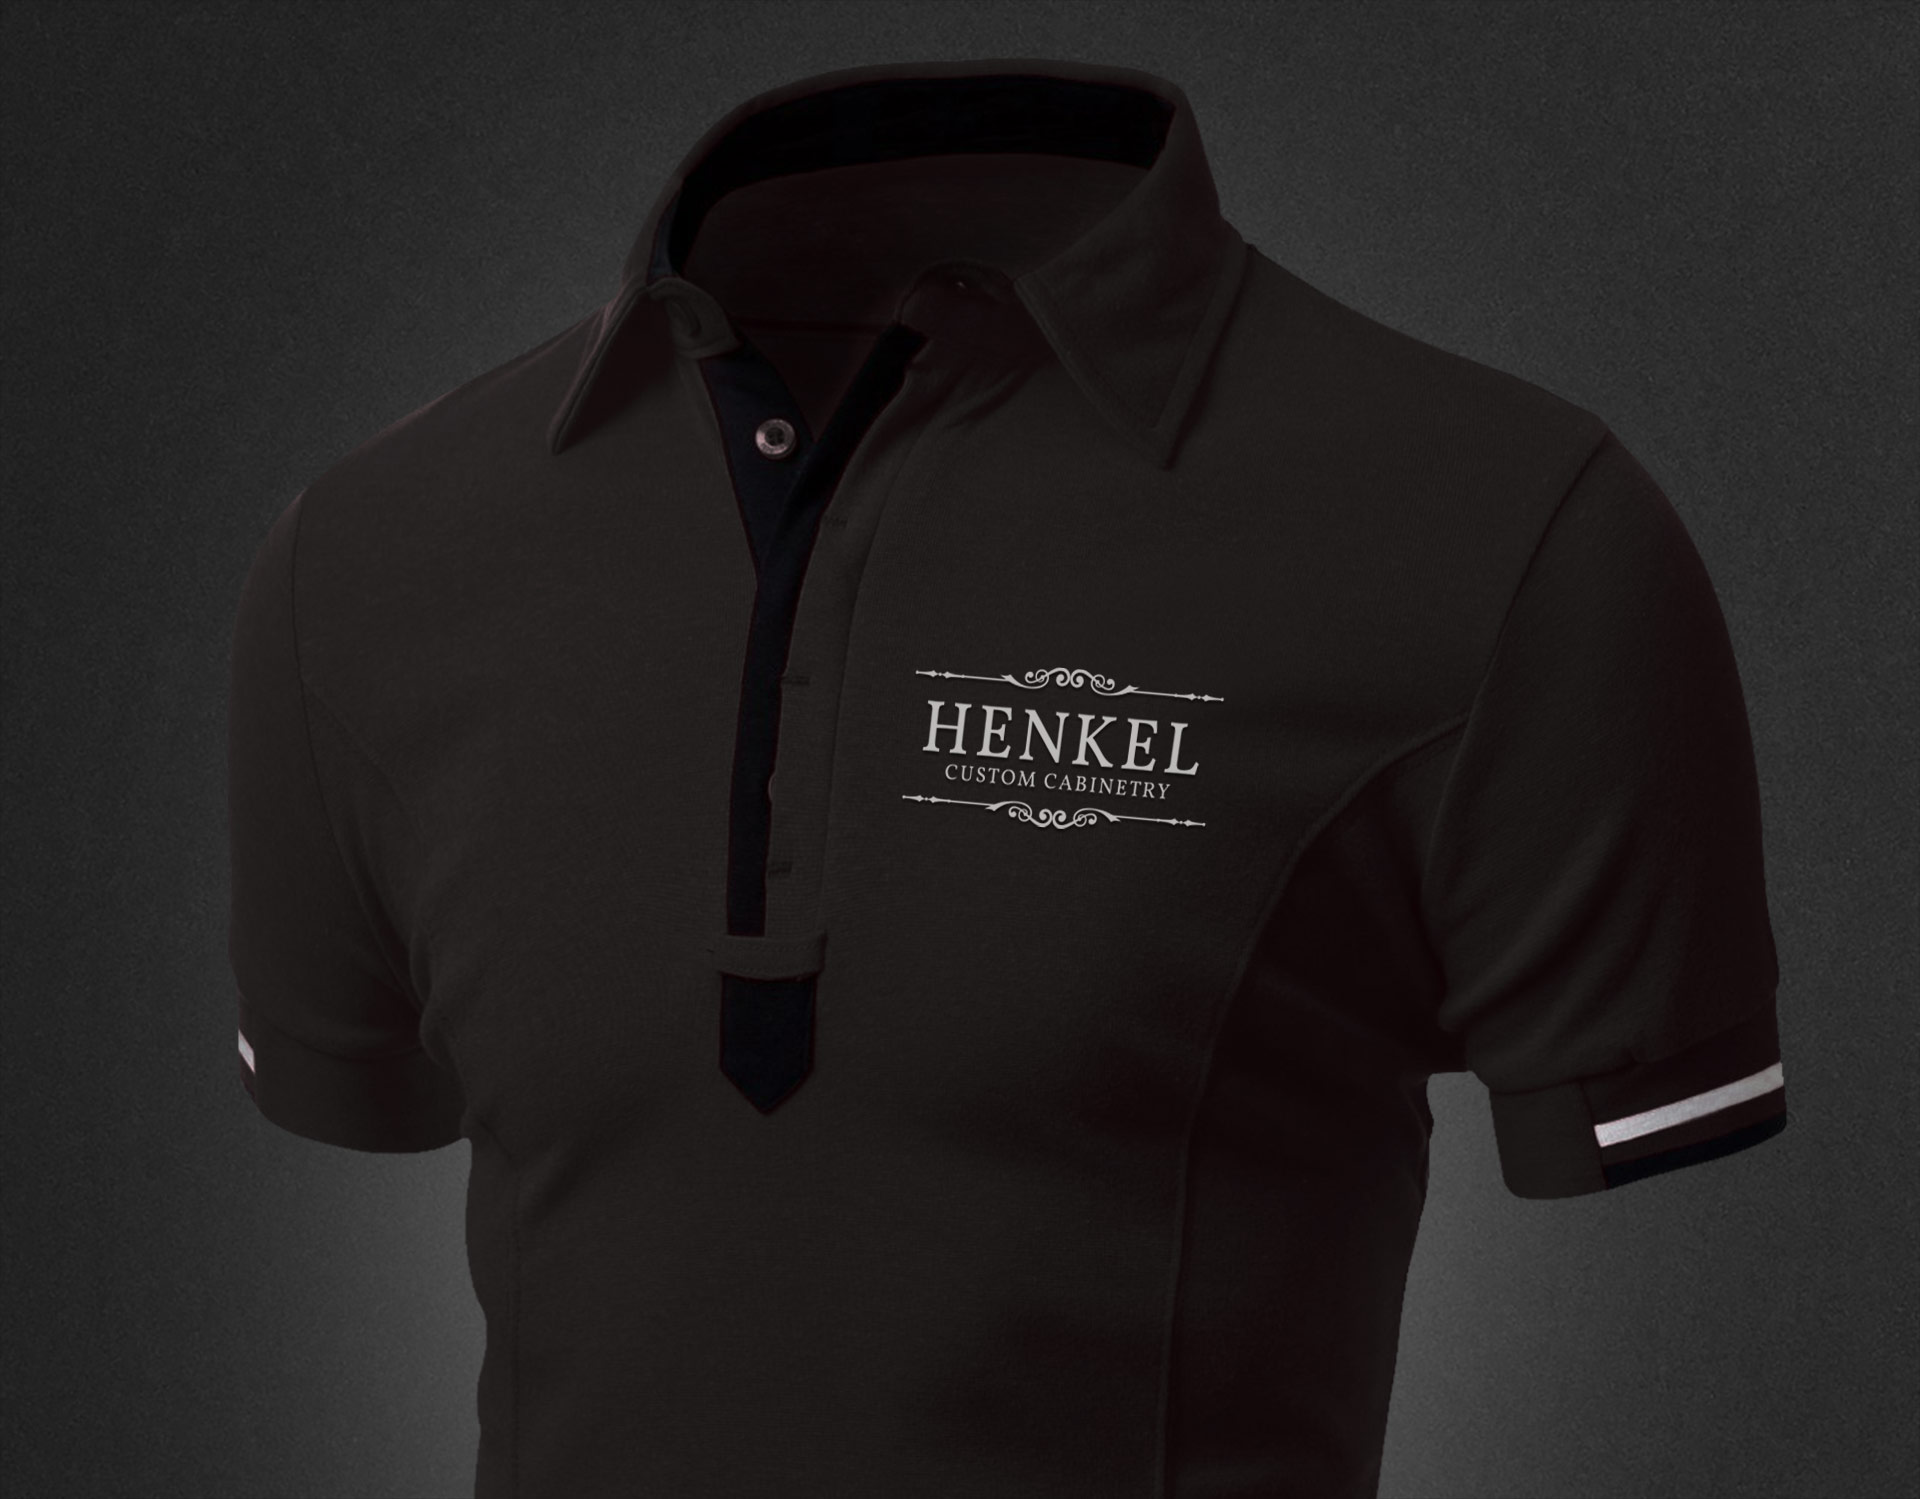 09b06223e1c 48North-henkel-polo-shirt